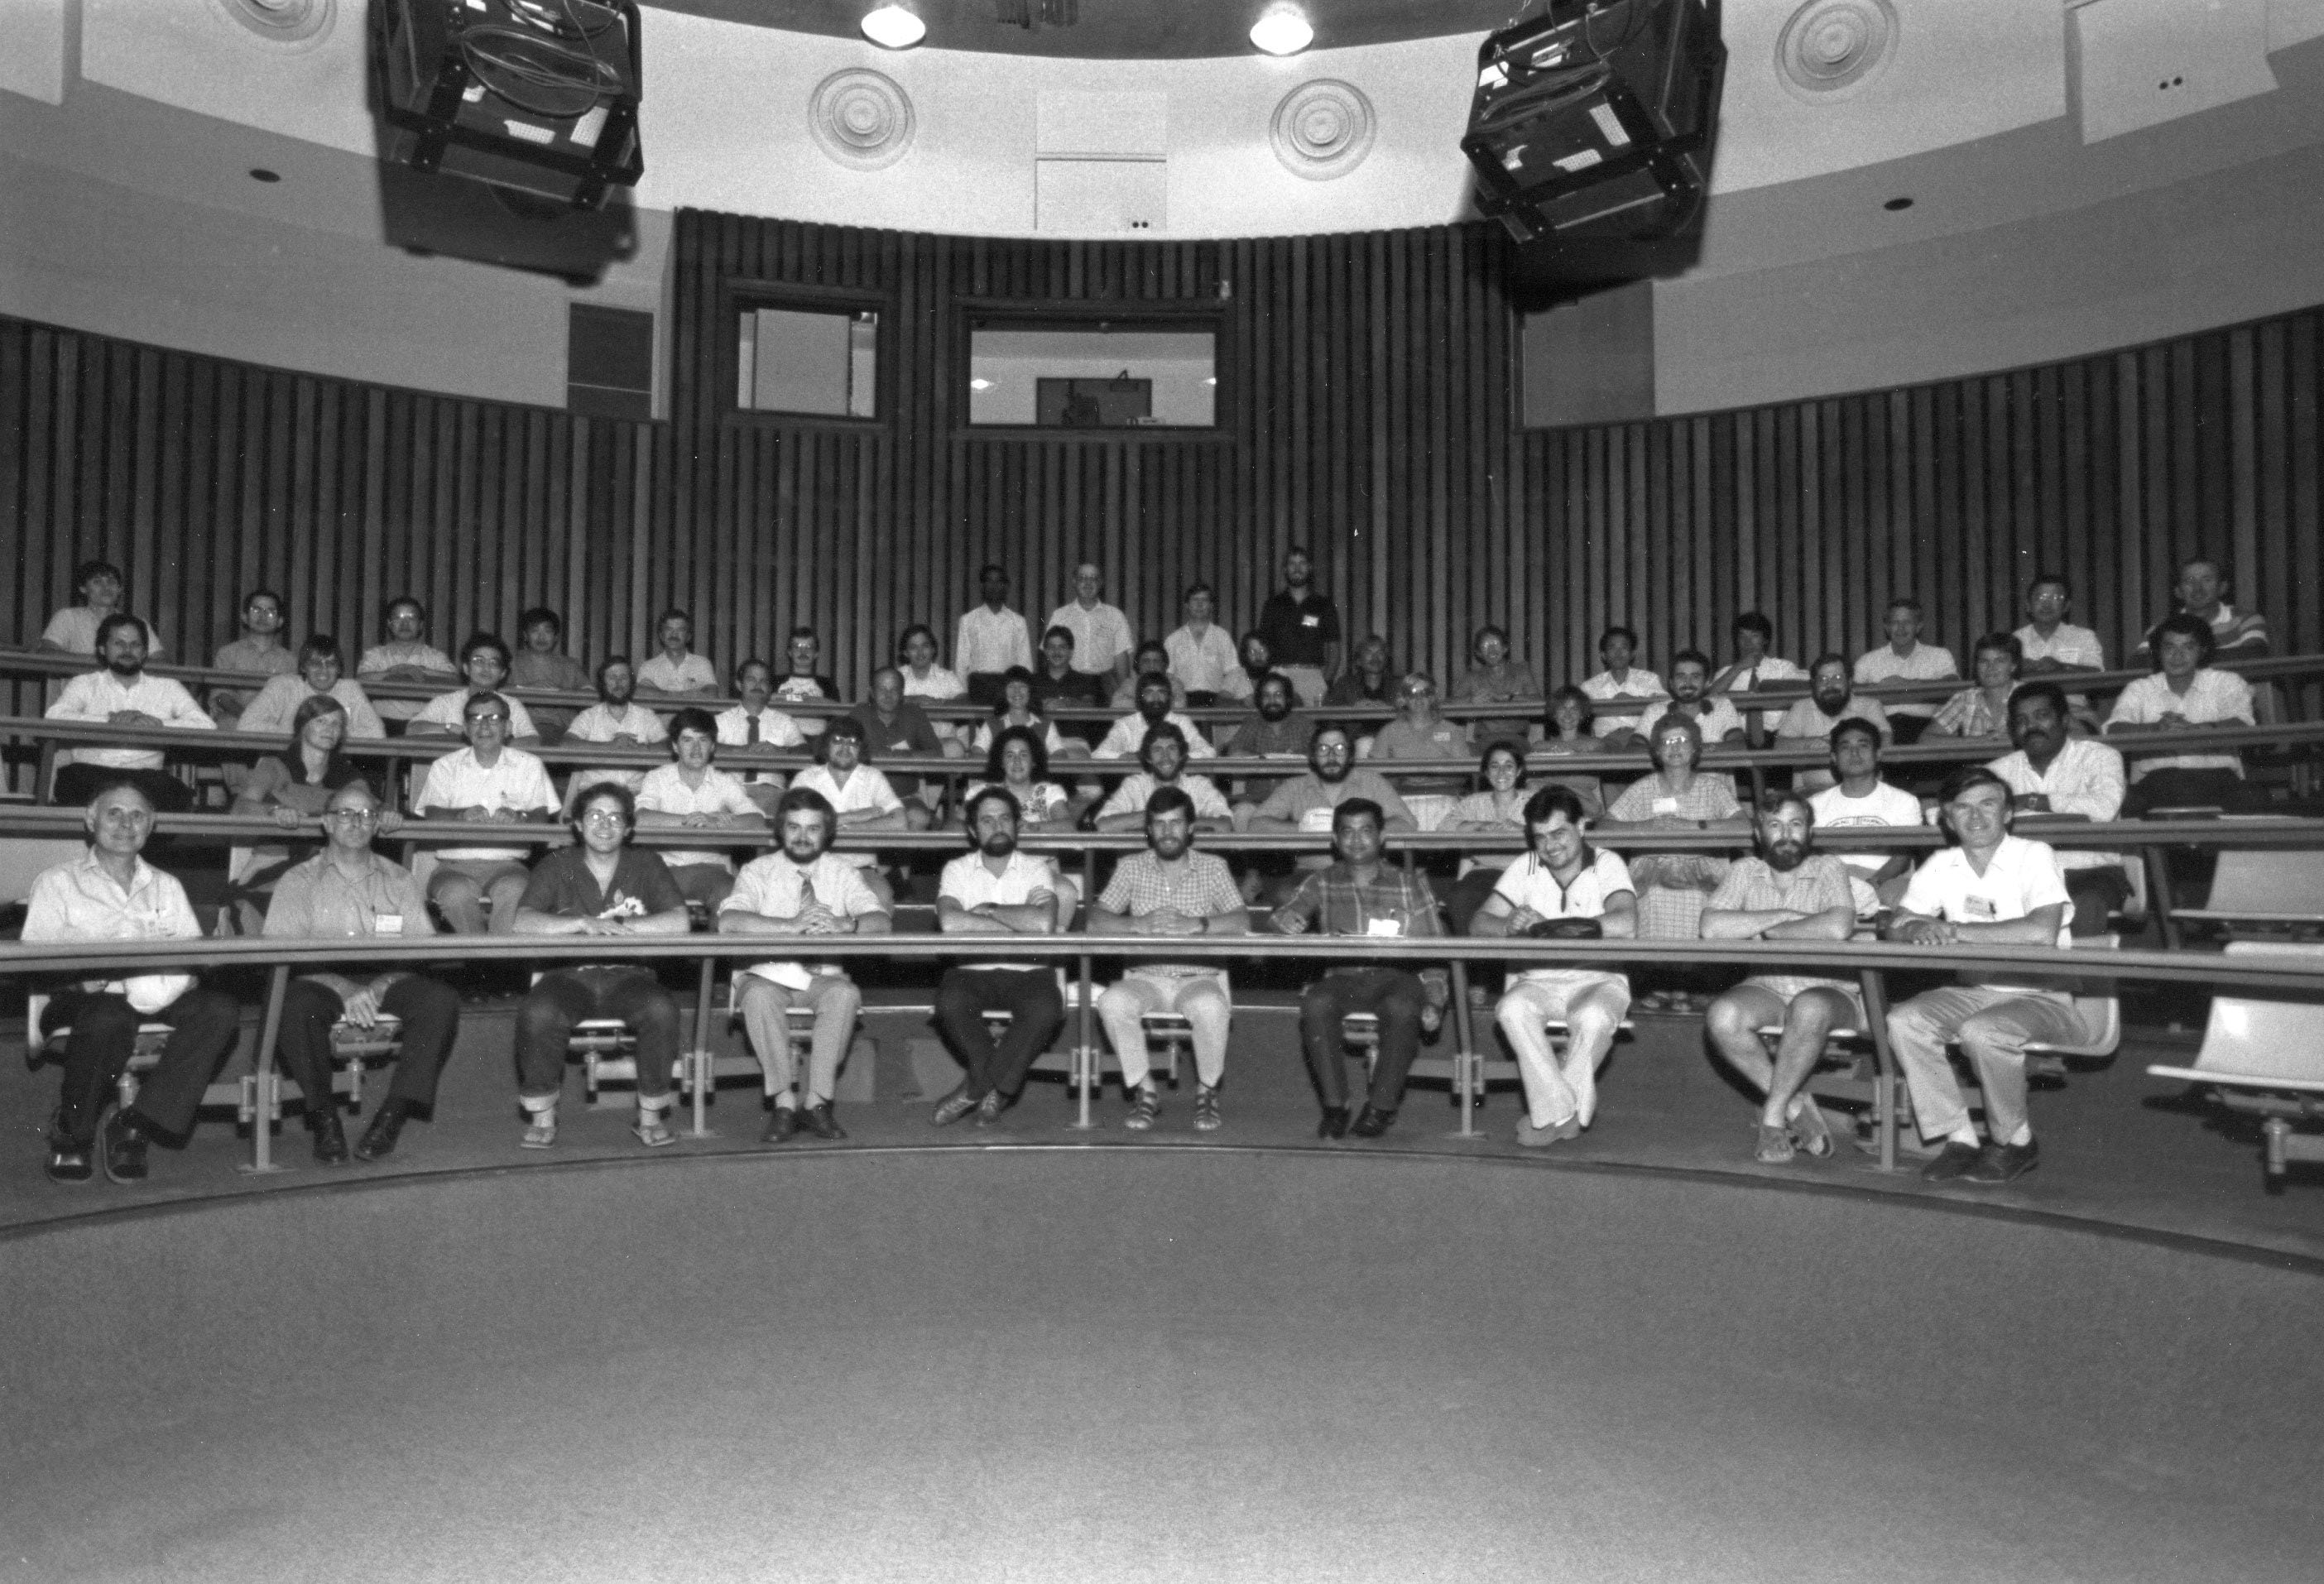 Fission Track Dating Conference 1984, Troy, NY Unites States